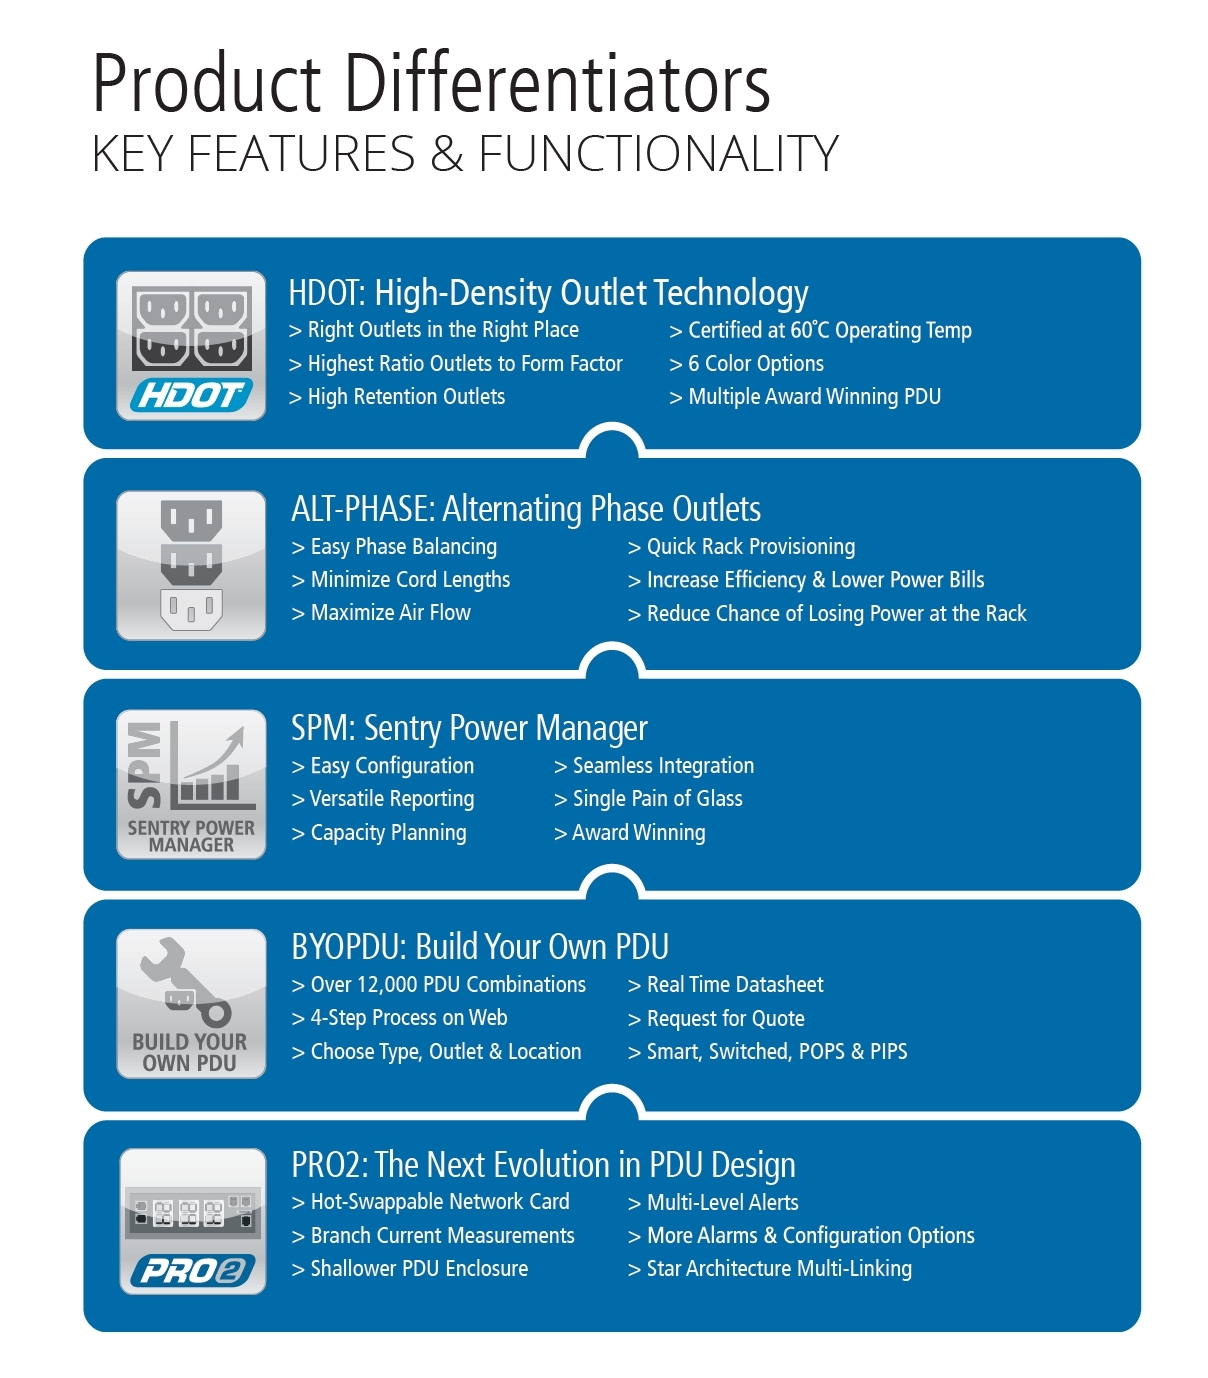 Server Tech Product Differentiators HDOT Alt Phase SPM BYO PDU Pro2